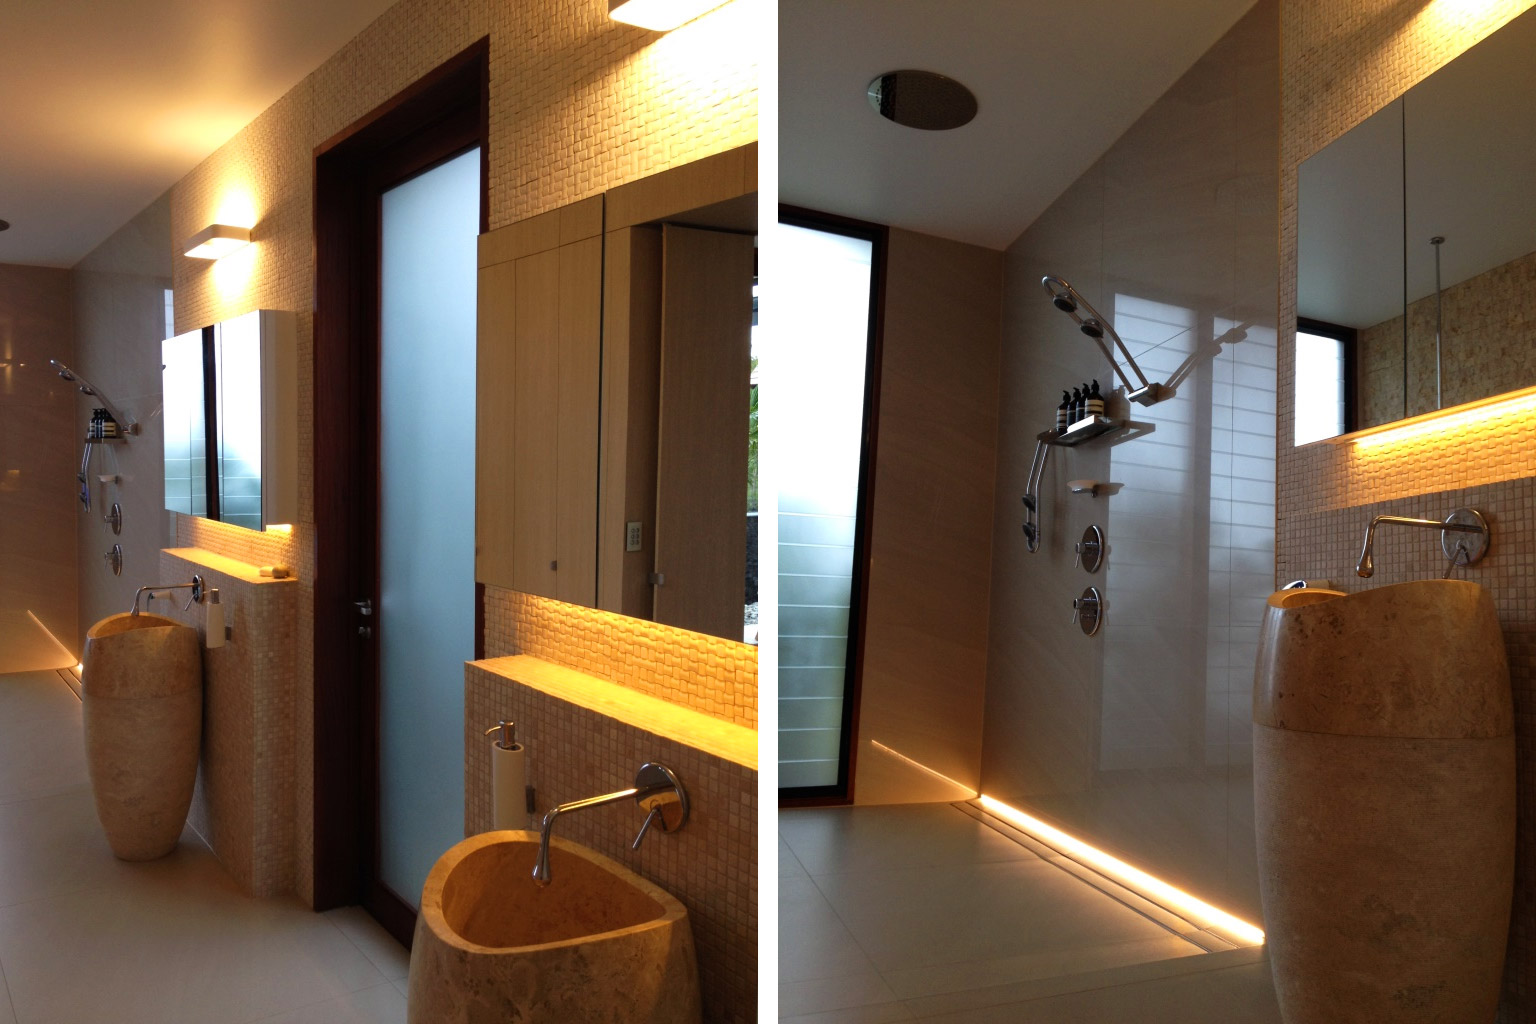 Cool Luxury Bathroom Ideas To Consider From Pietra Bianca